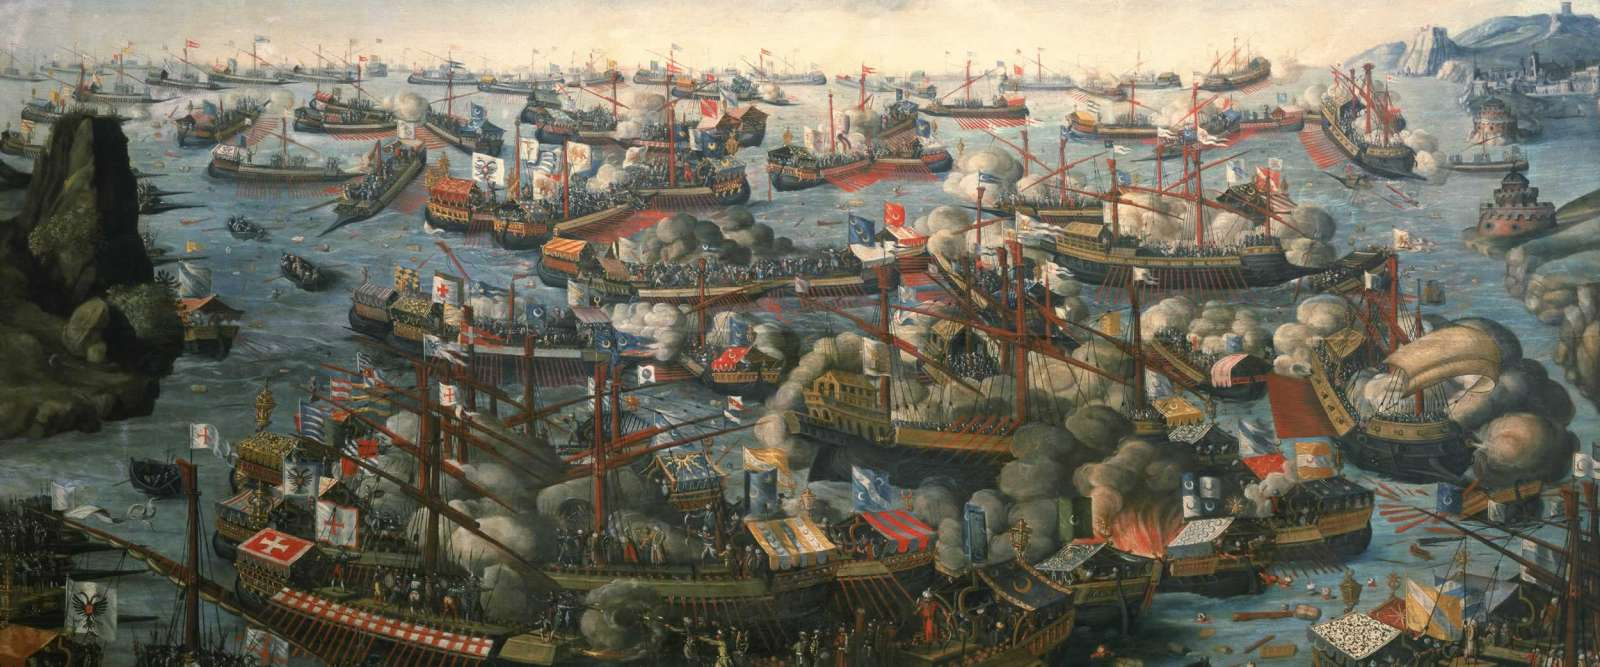 Battle of Lepanto,1571